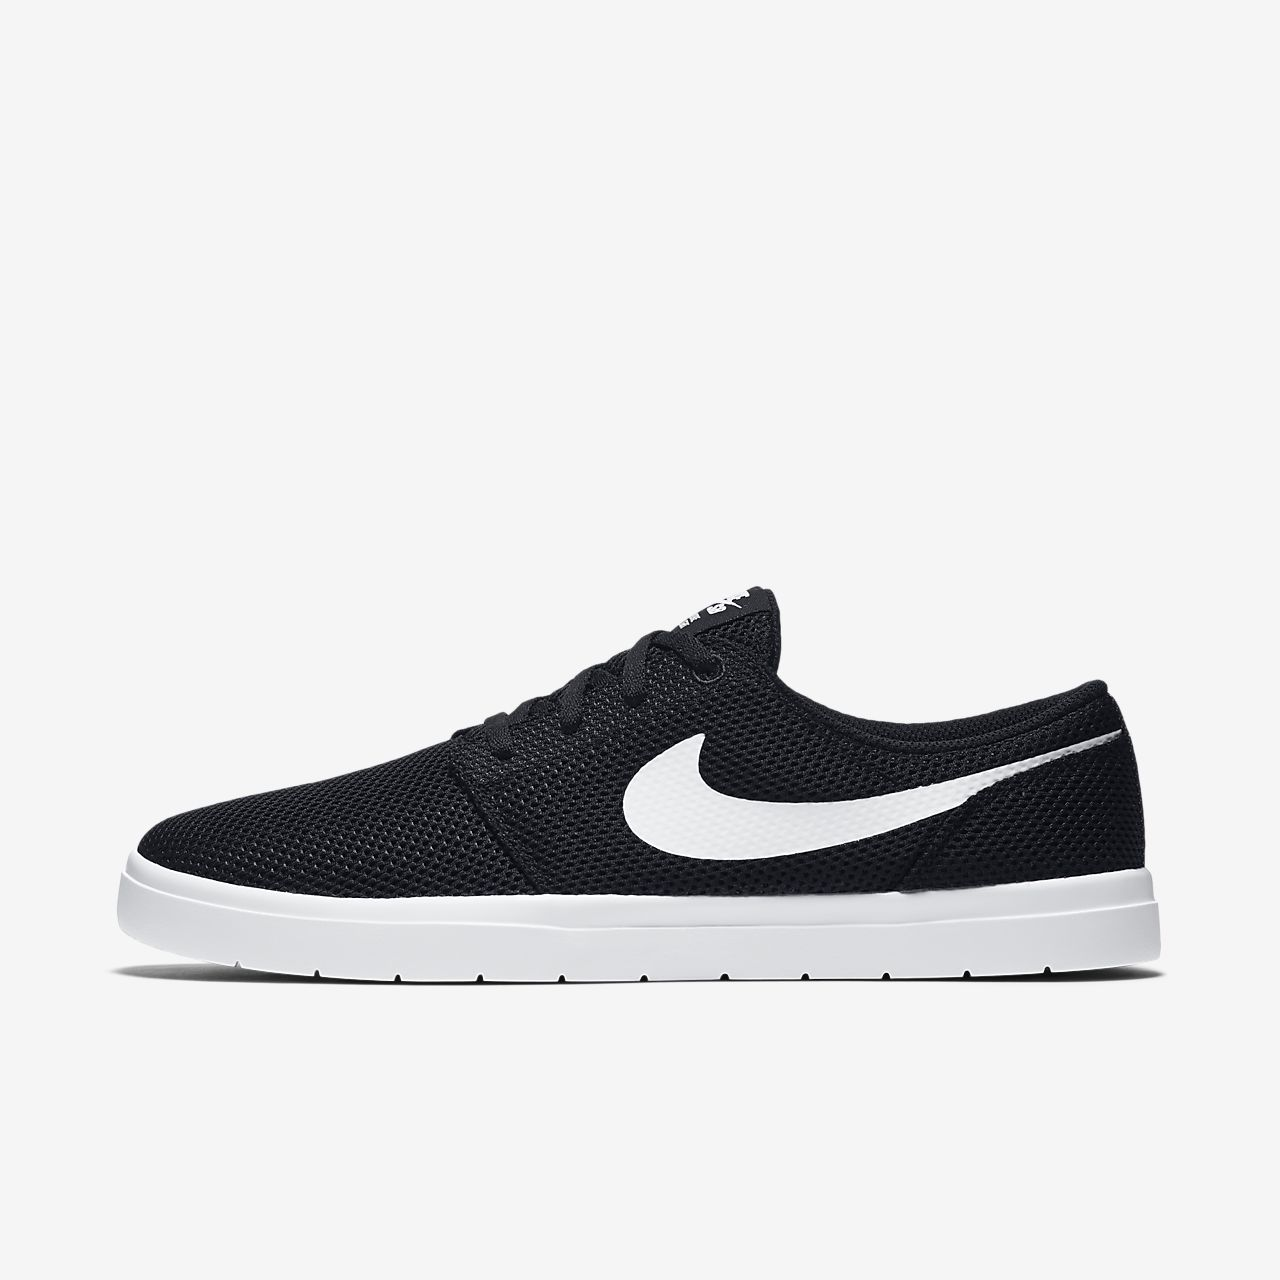 Nike SB Portmore II Boys Skateboarding Shoes Black/White mE4274P